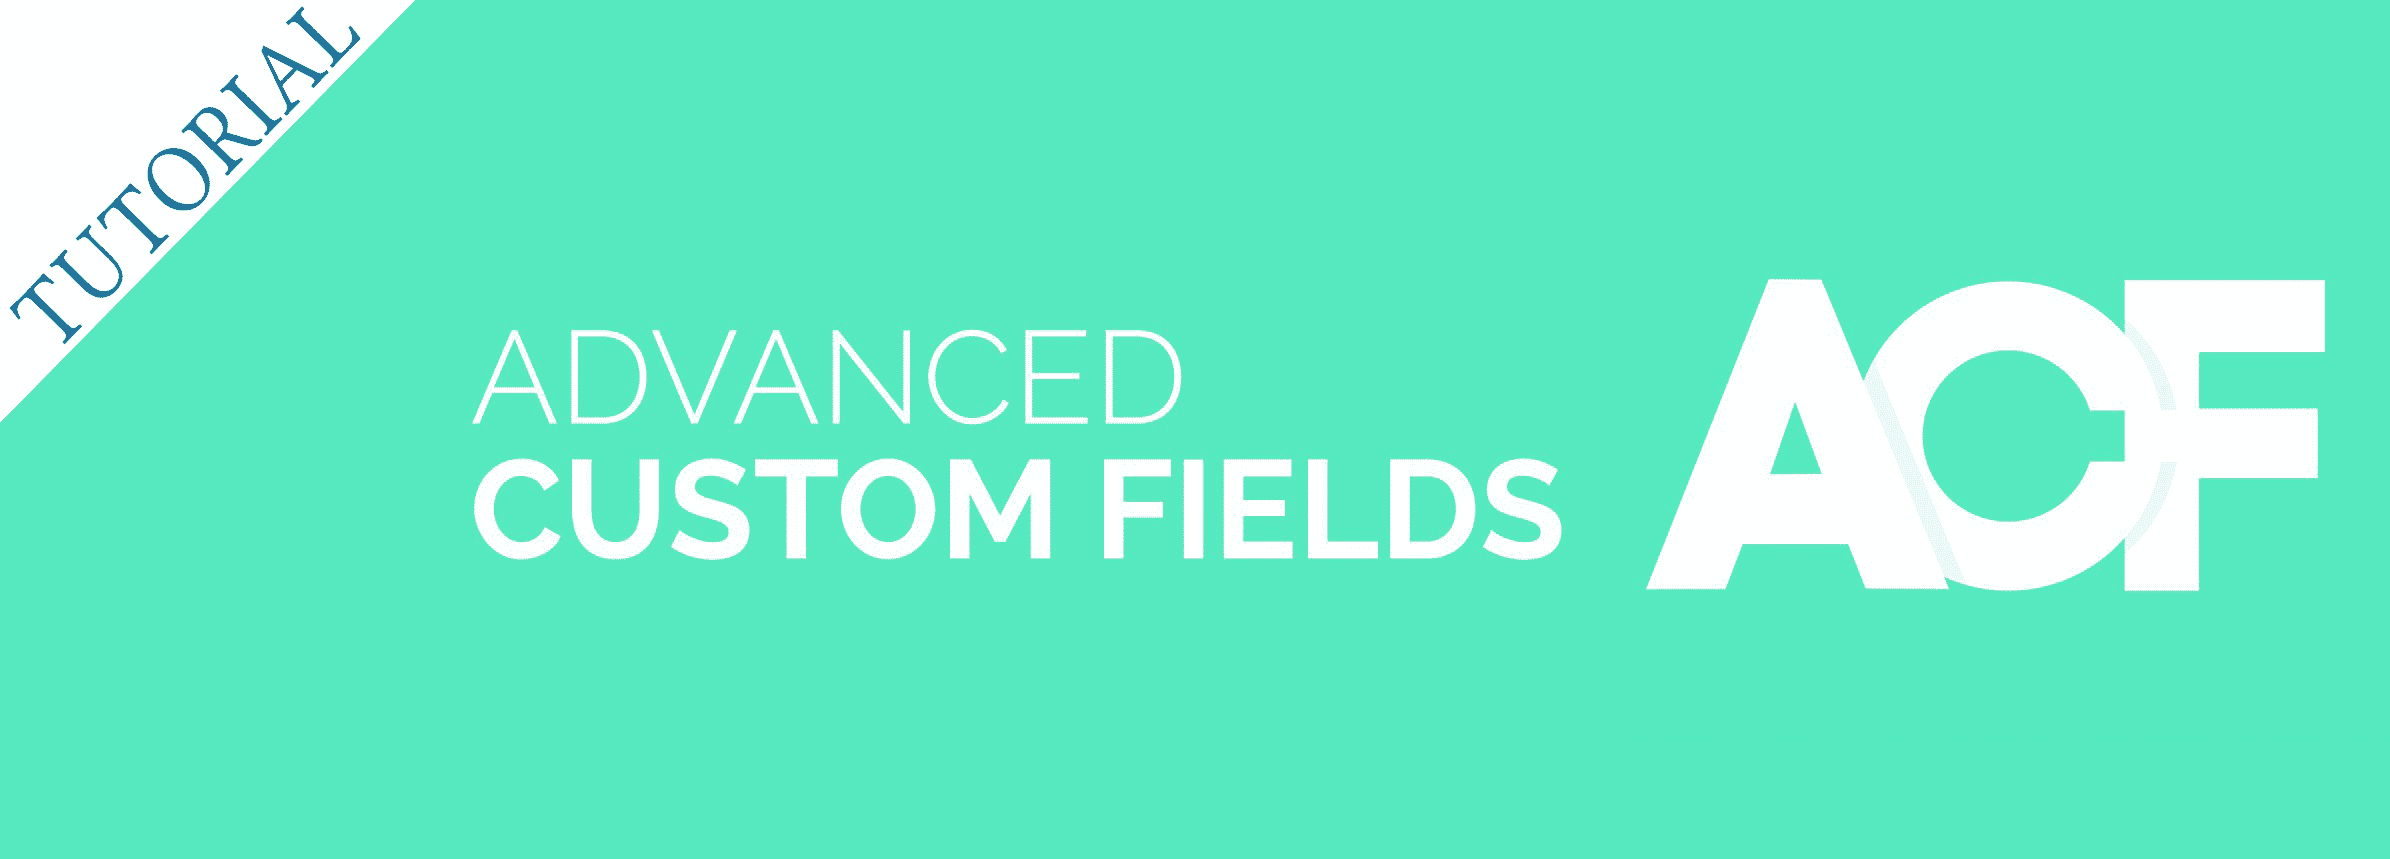 Advanced Custom Fields【TUTORIAL en español】